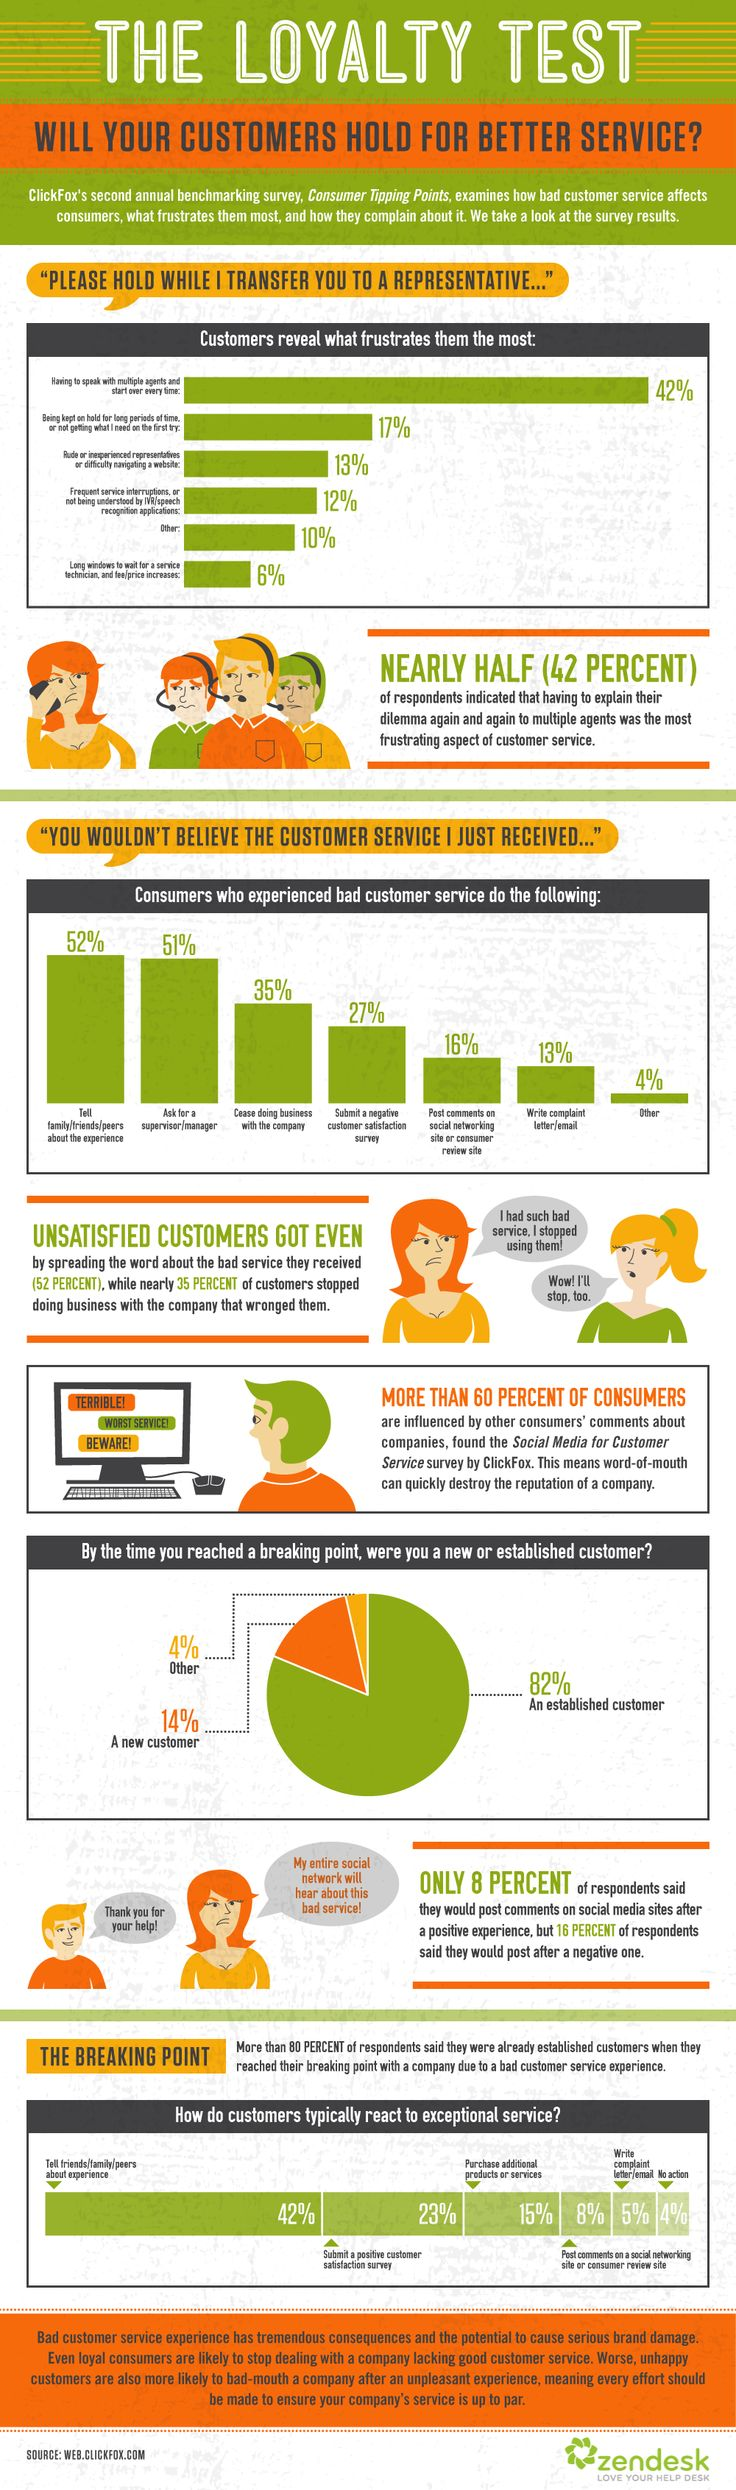 The importance of customer service, 52% of dissatisfied customers spreads the (bad) word with their network